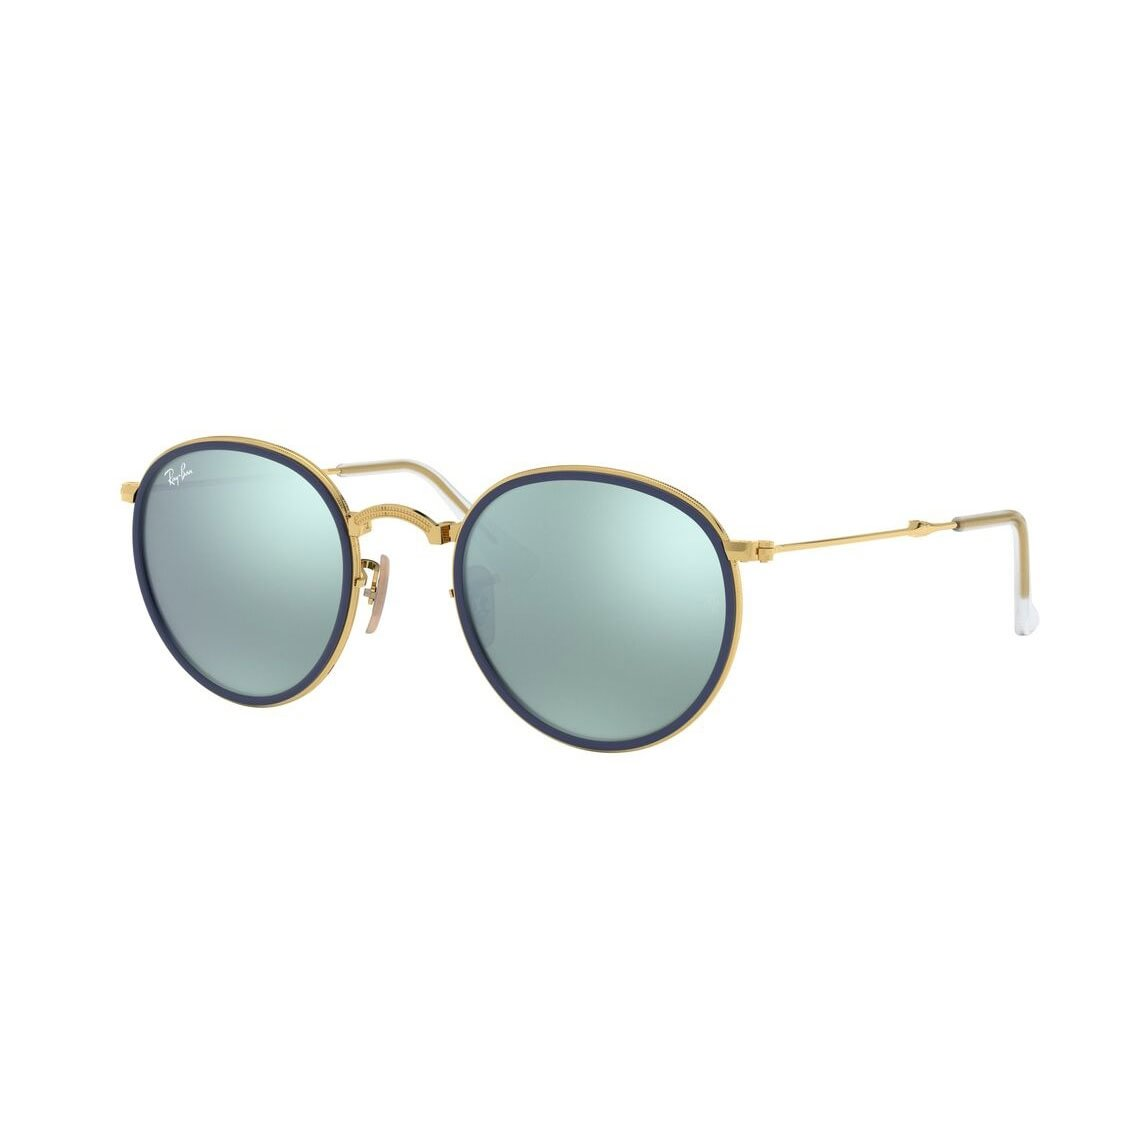 Ray-Ban Round folding RB3517 001/30 51